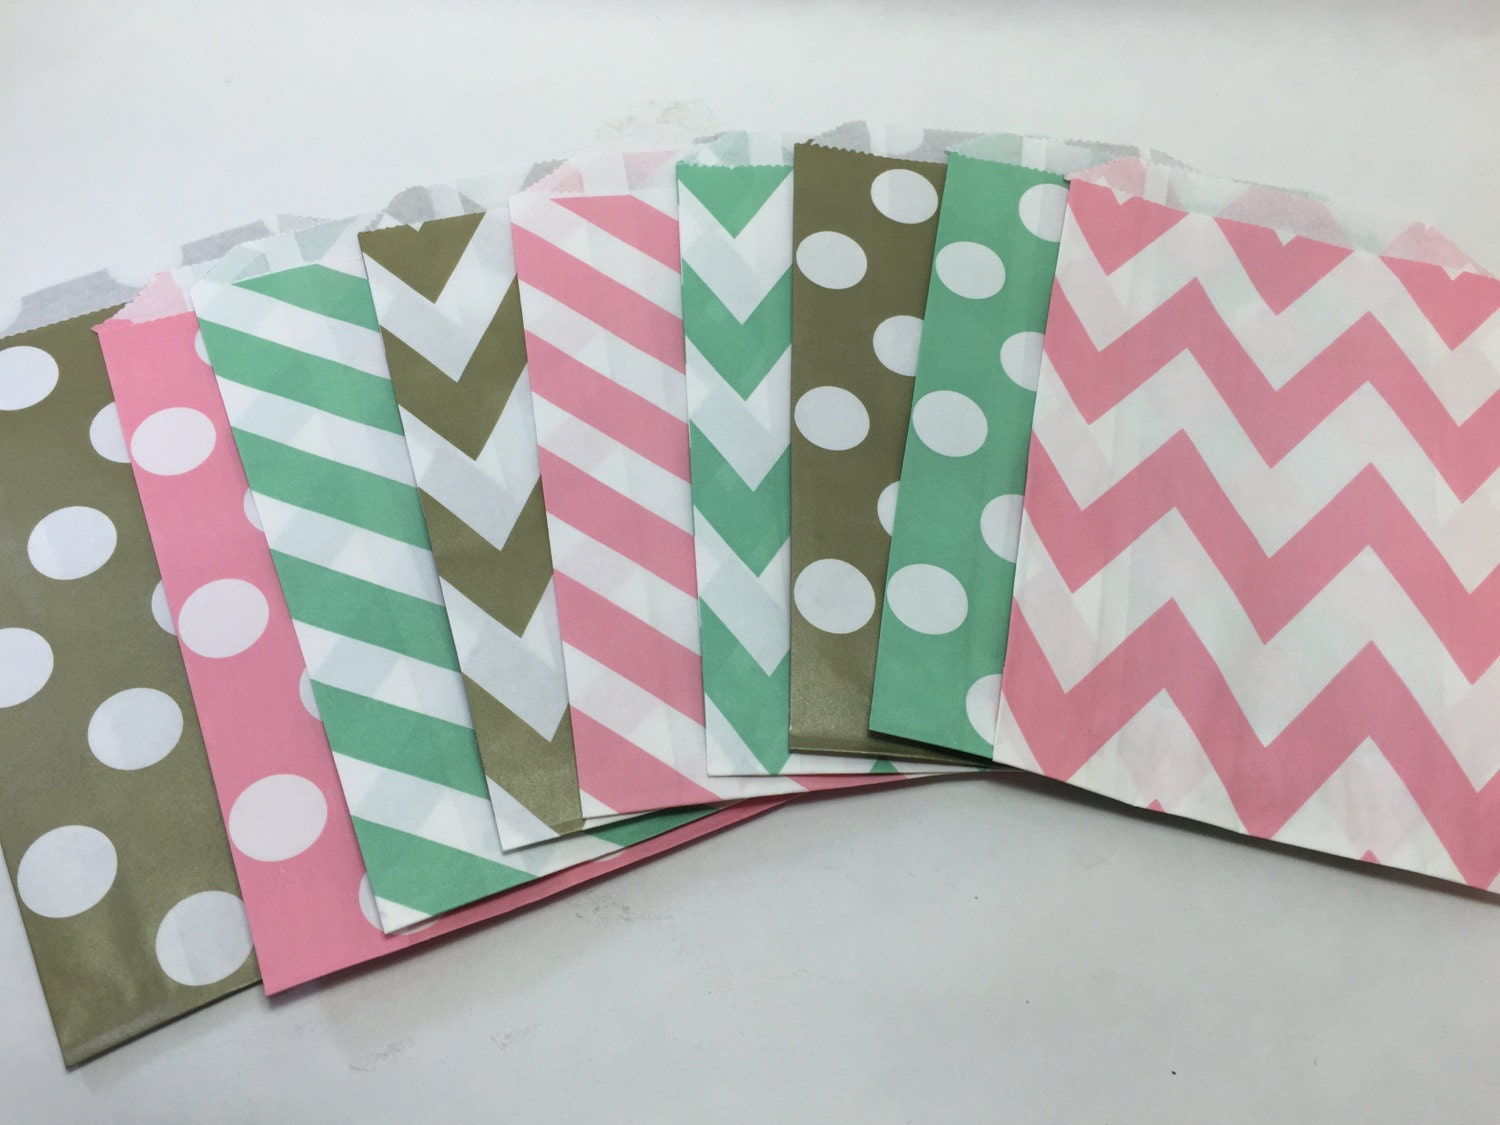 Pink Mint green Blush and GoLD Chevron PoLKa Dot dotted striped ...